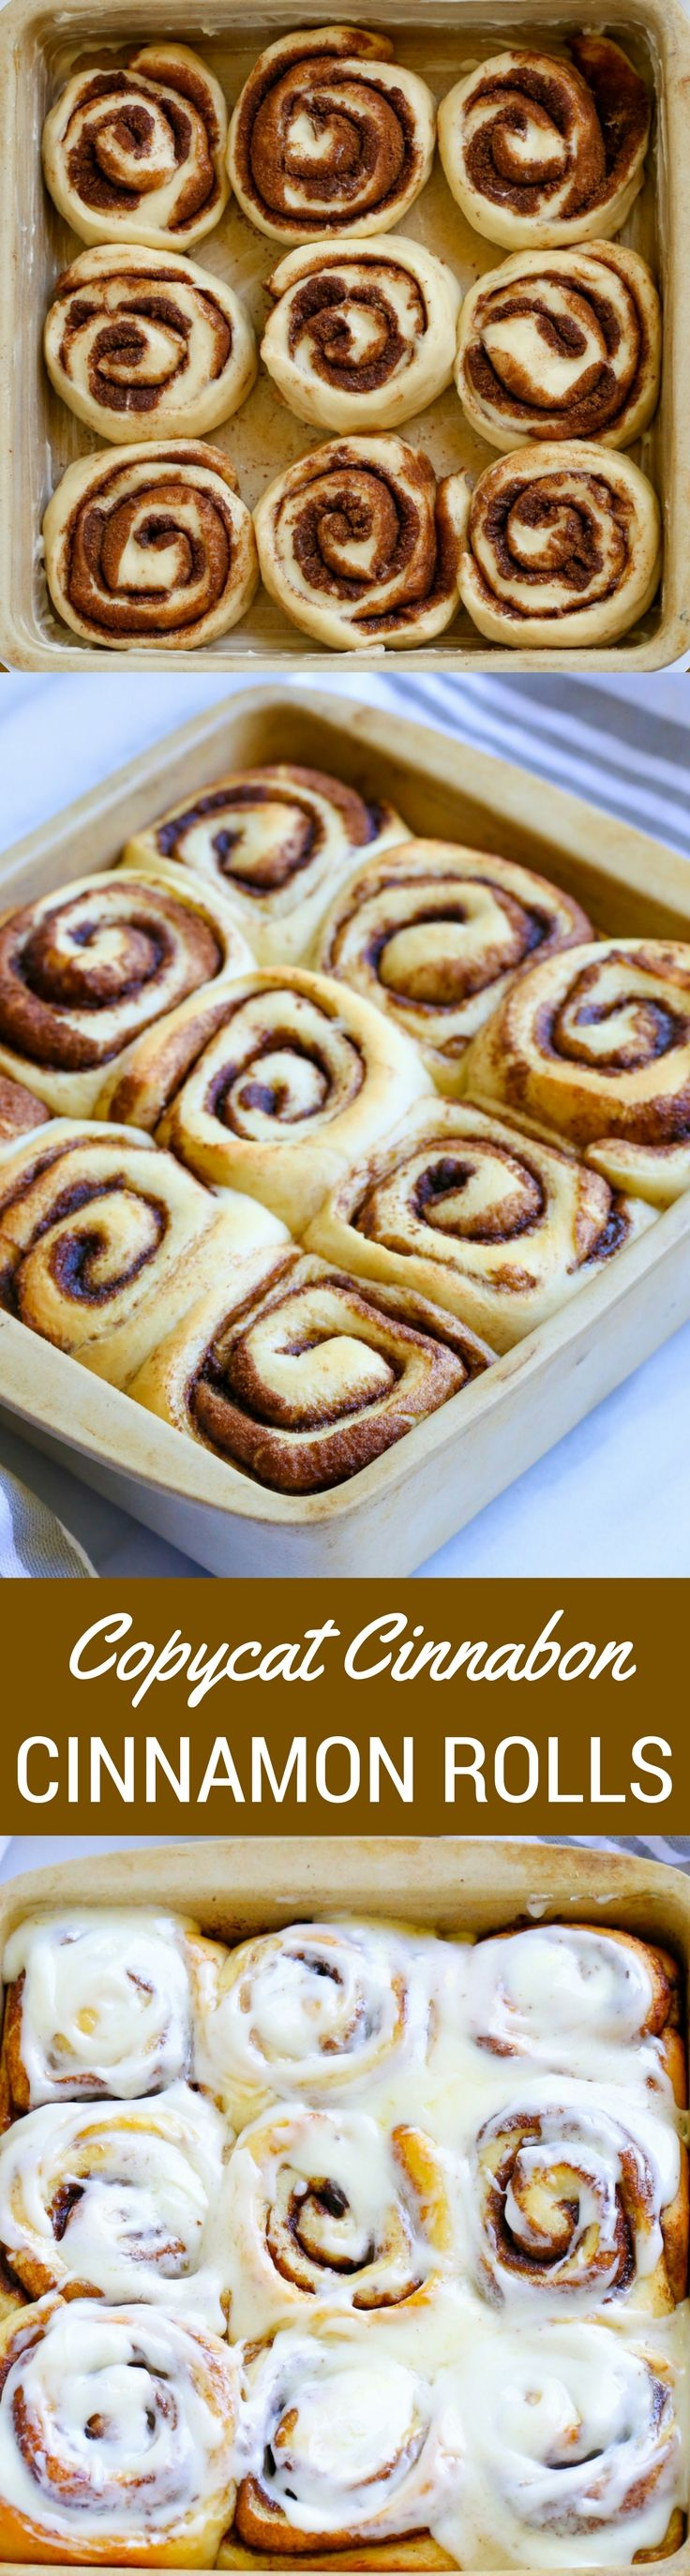 The BEST copycat CINNABON CINNAMON ROLLS recipe. These scrumptious homemade cinnamon rolls are soft, warm and fluffy with delicious icing. This famous comfort food recipe is a perfect dessert for any occasion. PIN NOW FOR LATER!